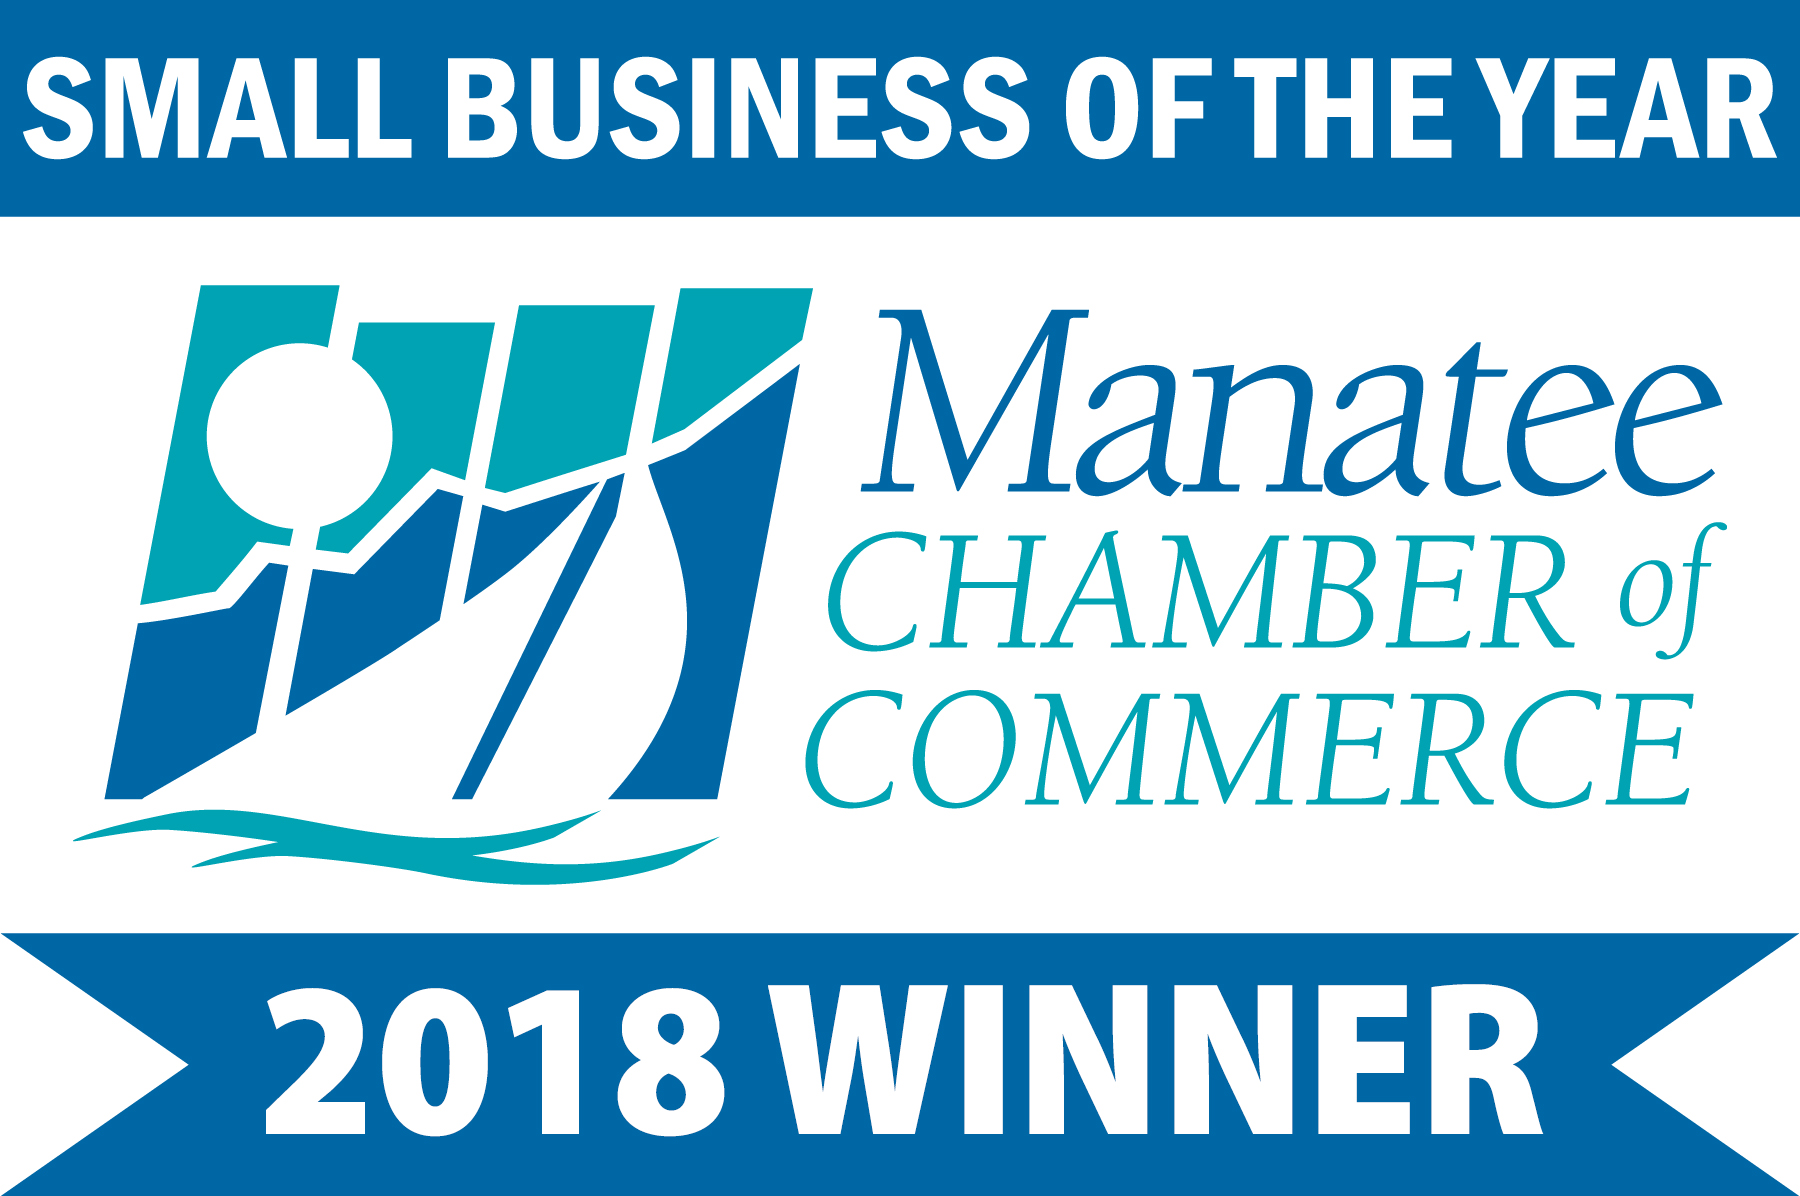 Small Business of Year_Logo_2018_WINNER.jpg